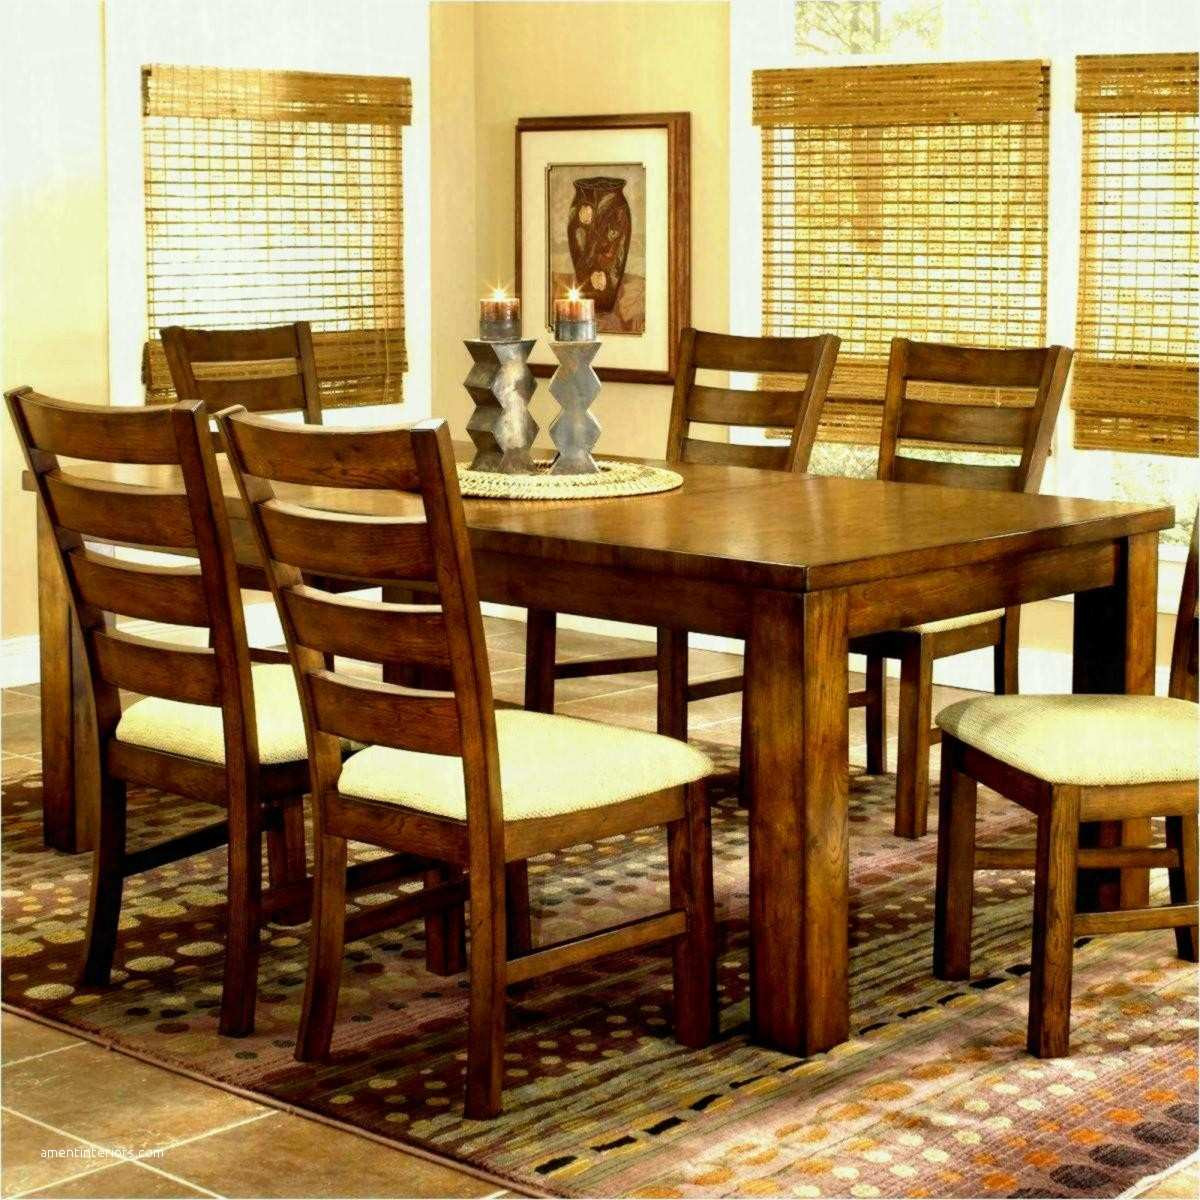 Discount Hardwood Flooring Online Of Cheap and Reviews Modern Wood Dining Table Design Styling Up Your In Cheap and Reviews Modern Wood Dining Table Design Styling Up Your Real Wood Dining Table Improbable solid Set Ideas Od Room Tables New